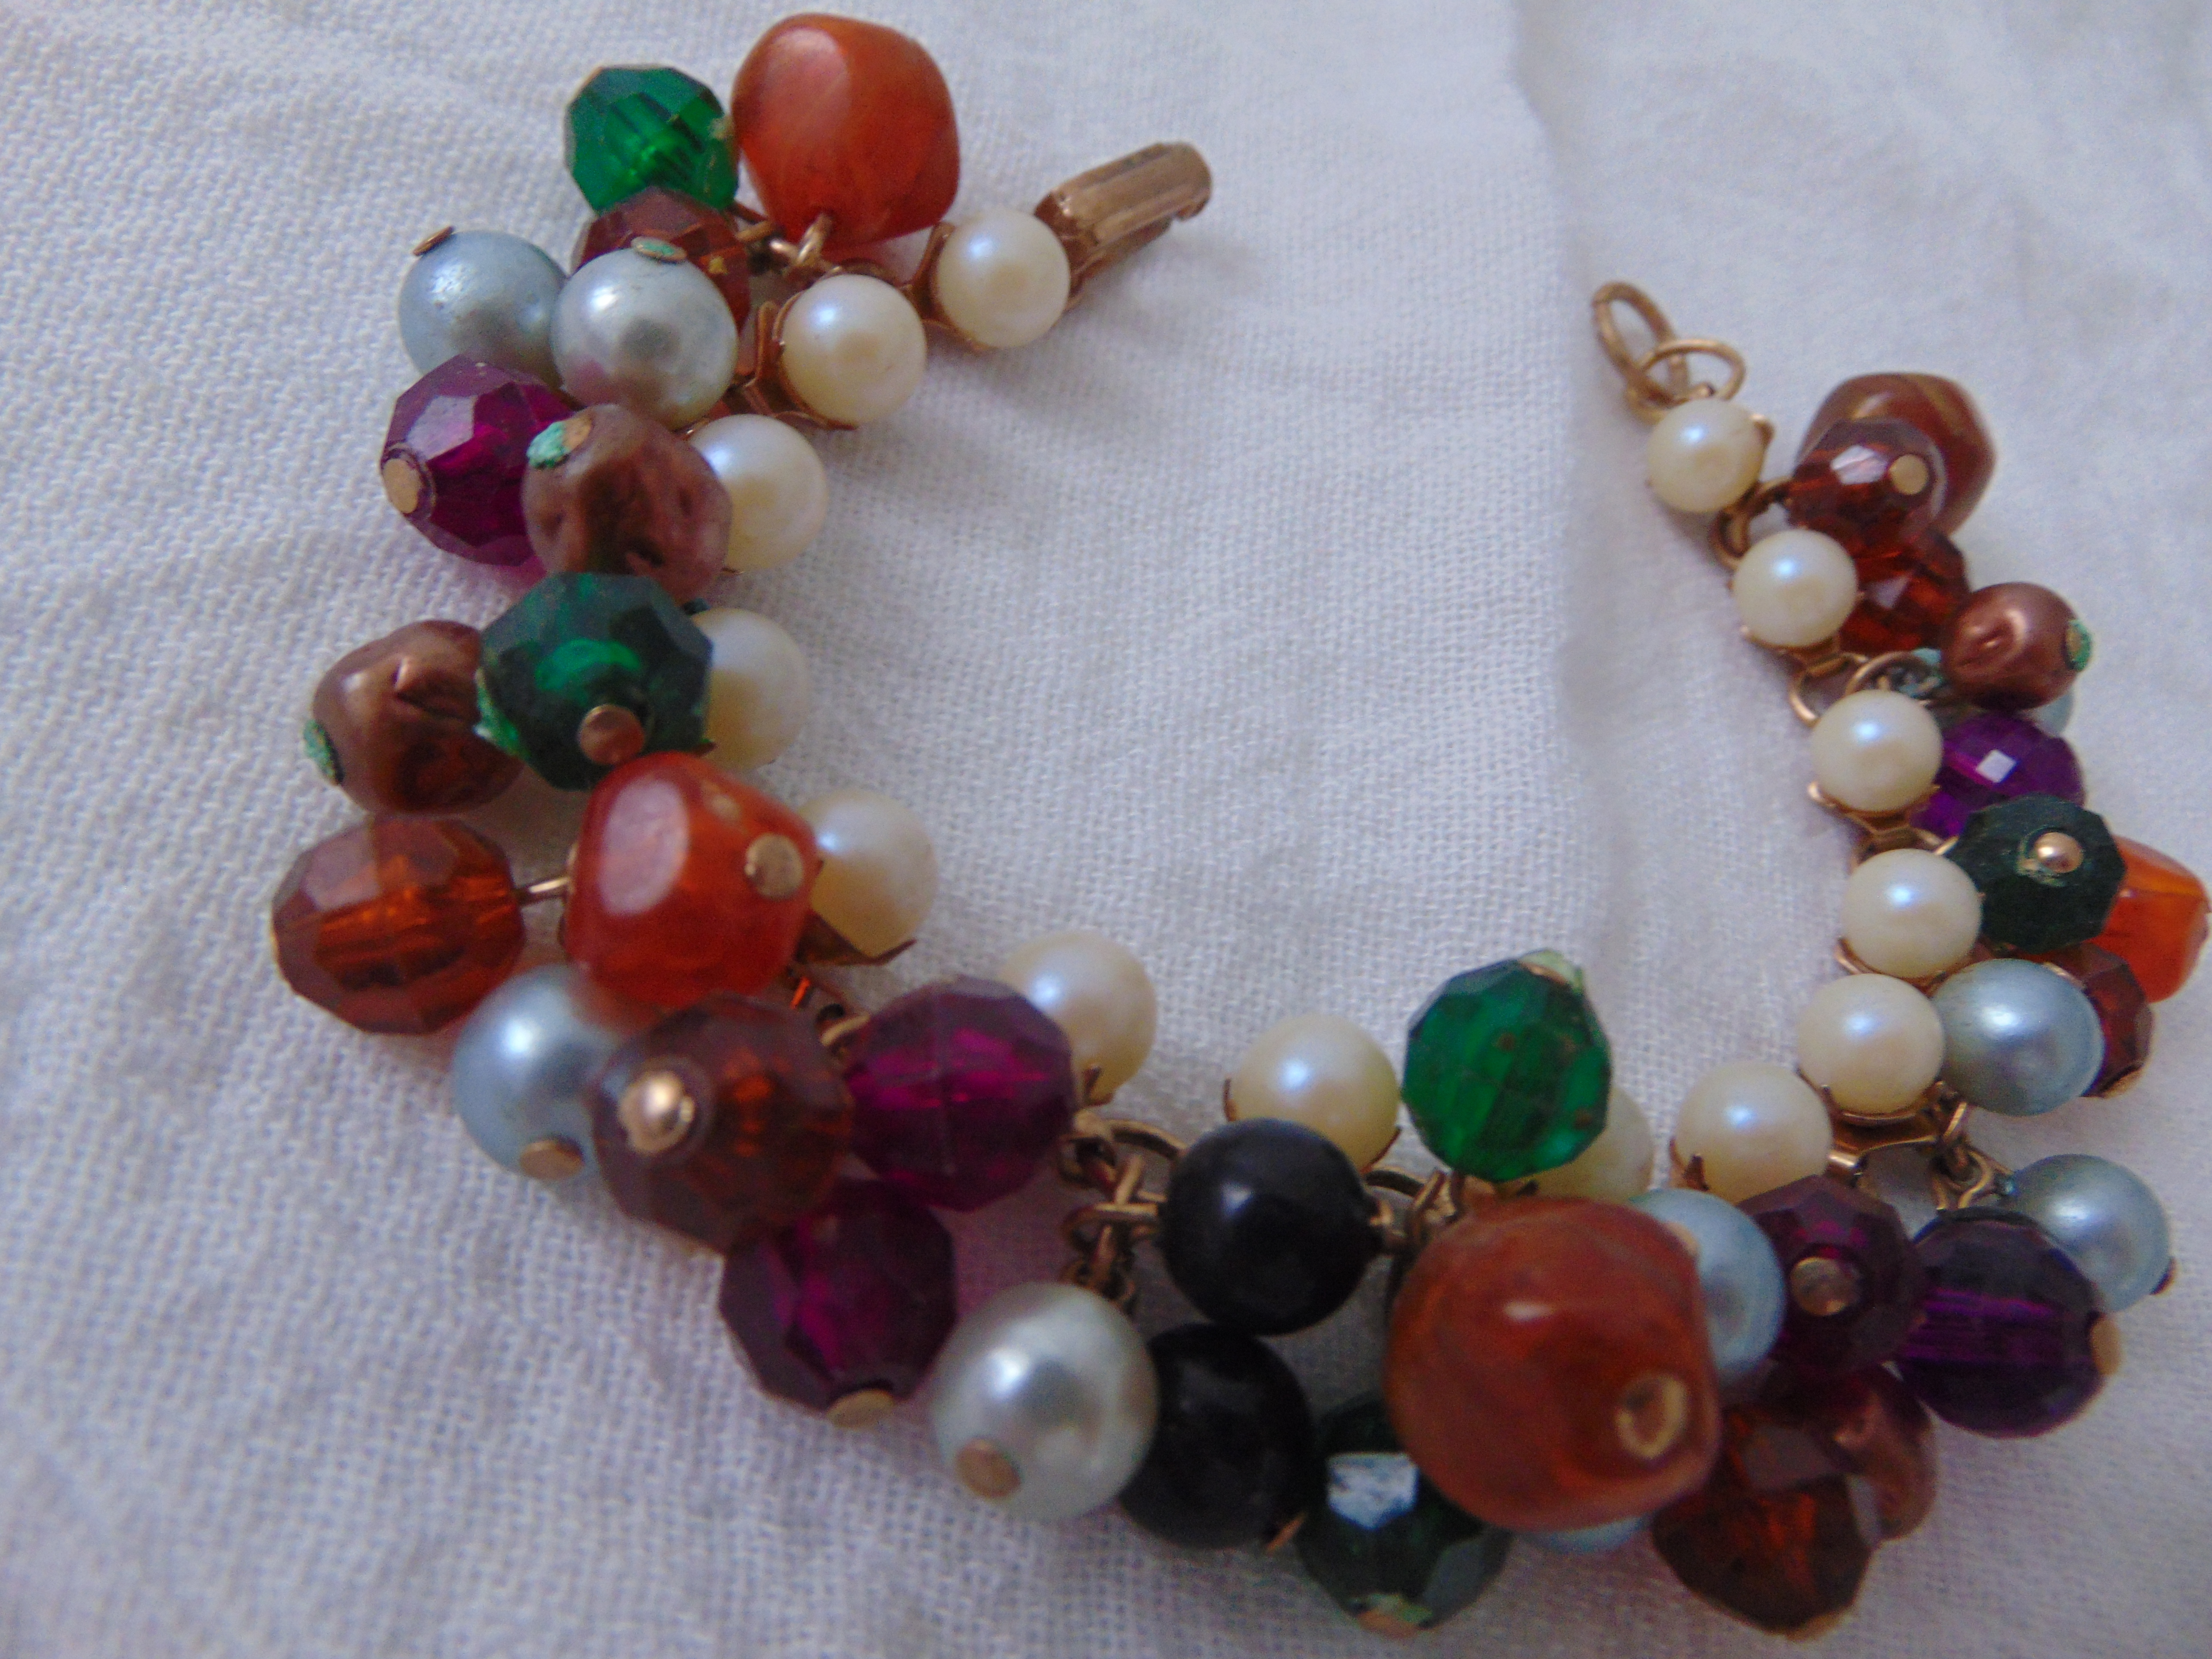 vintage pearls colorful beads cha cha bracelet